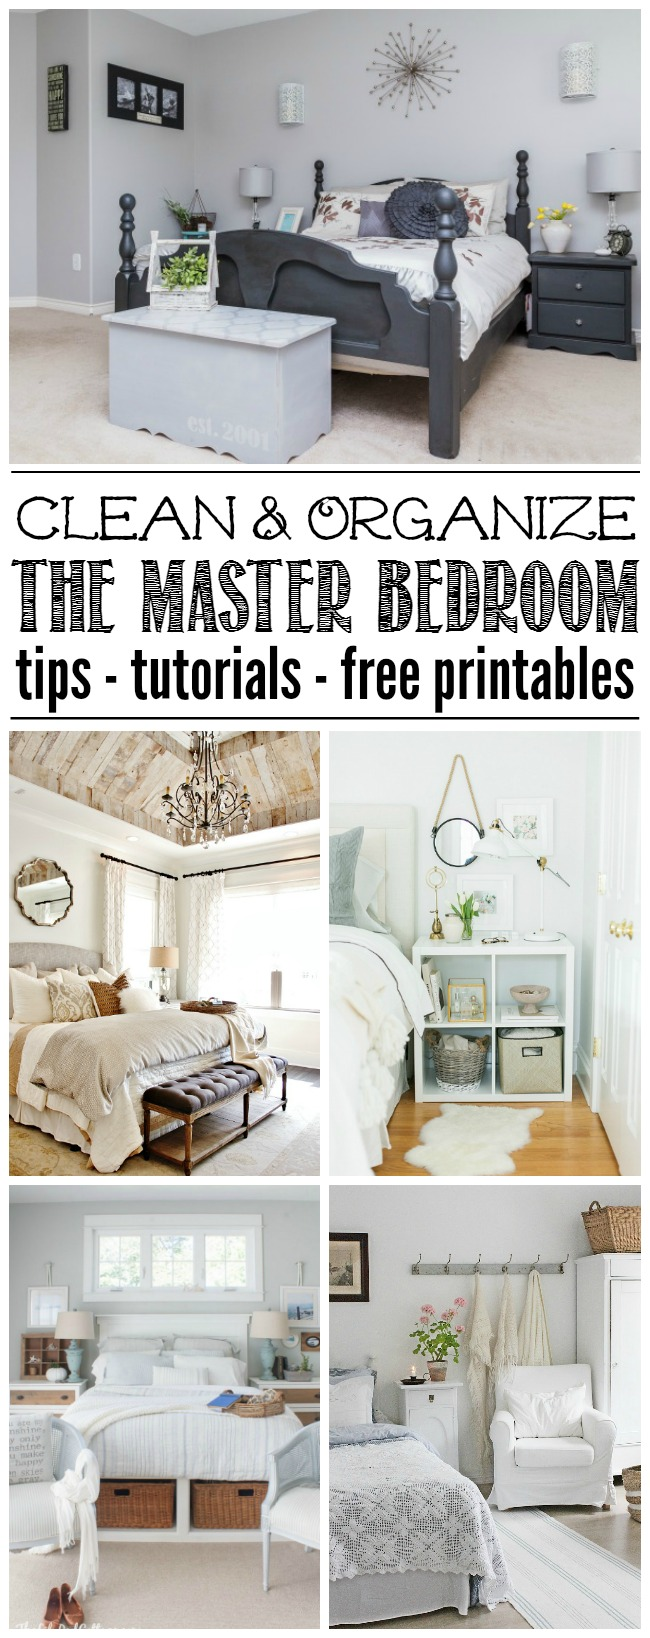 Master bedroom organization hod clean and scentsible How to clean and organize a small bedroom